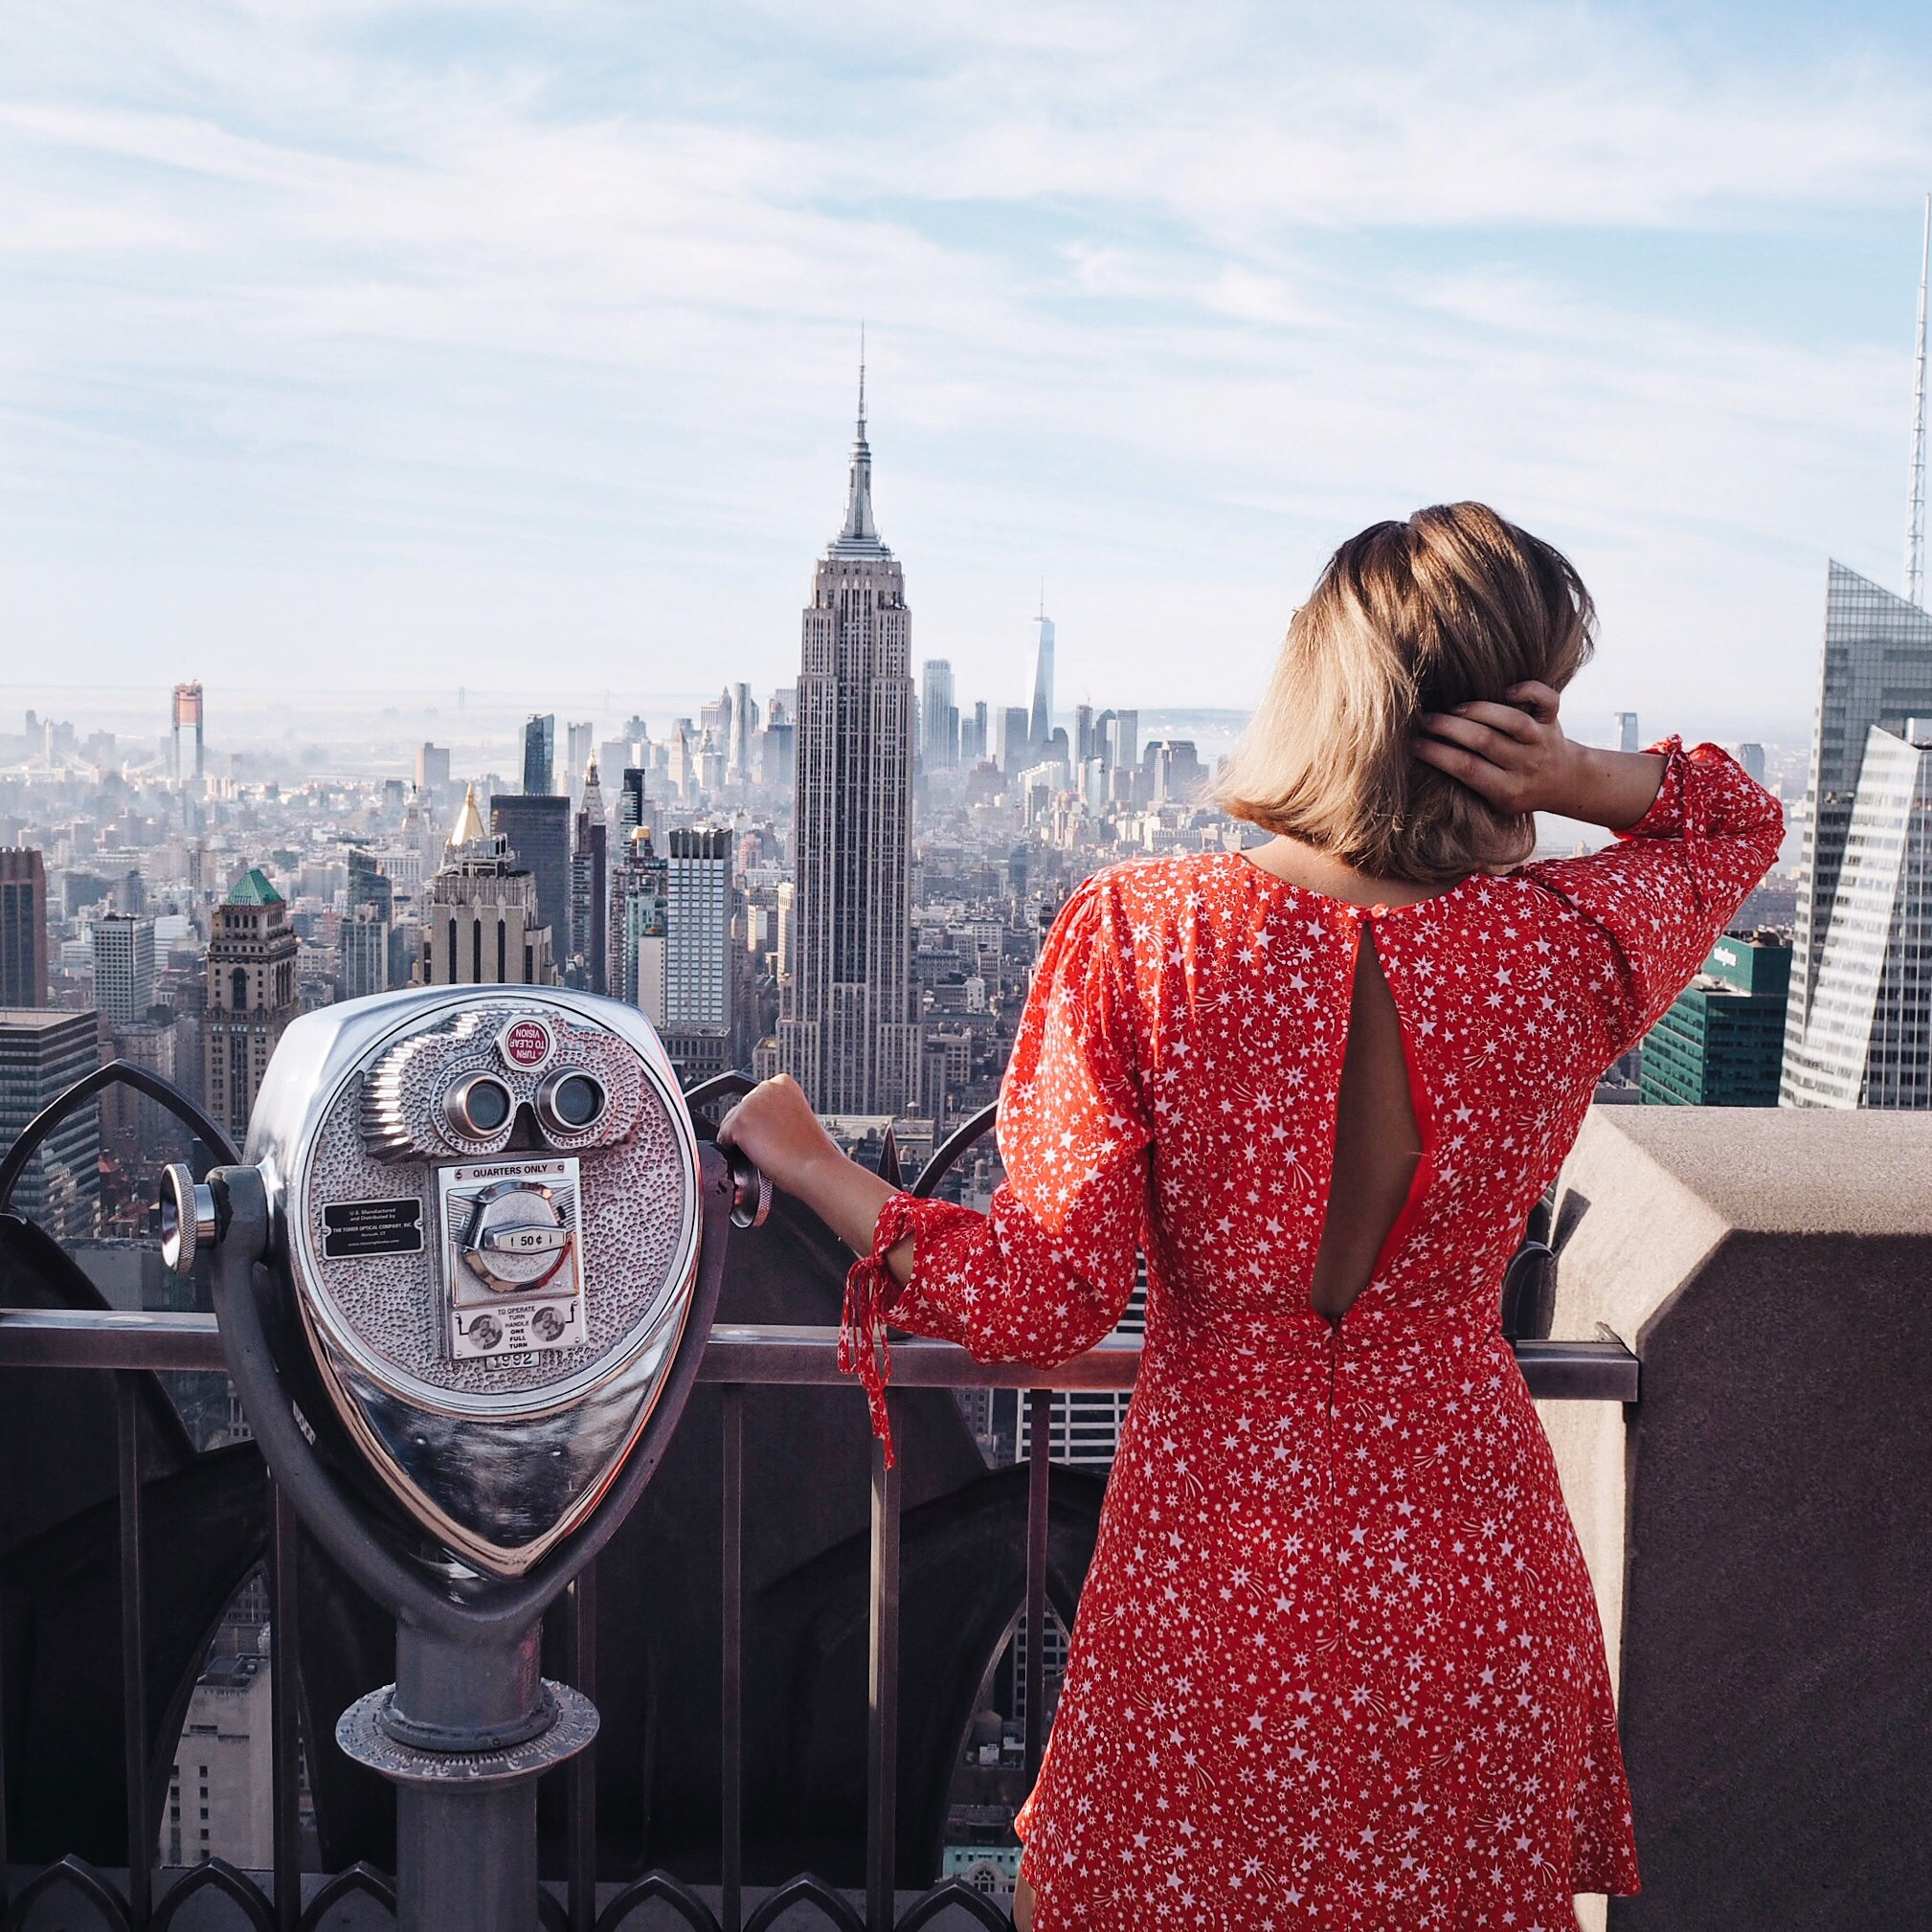 New york cocoa chelsea jesschamilton top of the rock red Topshop dress